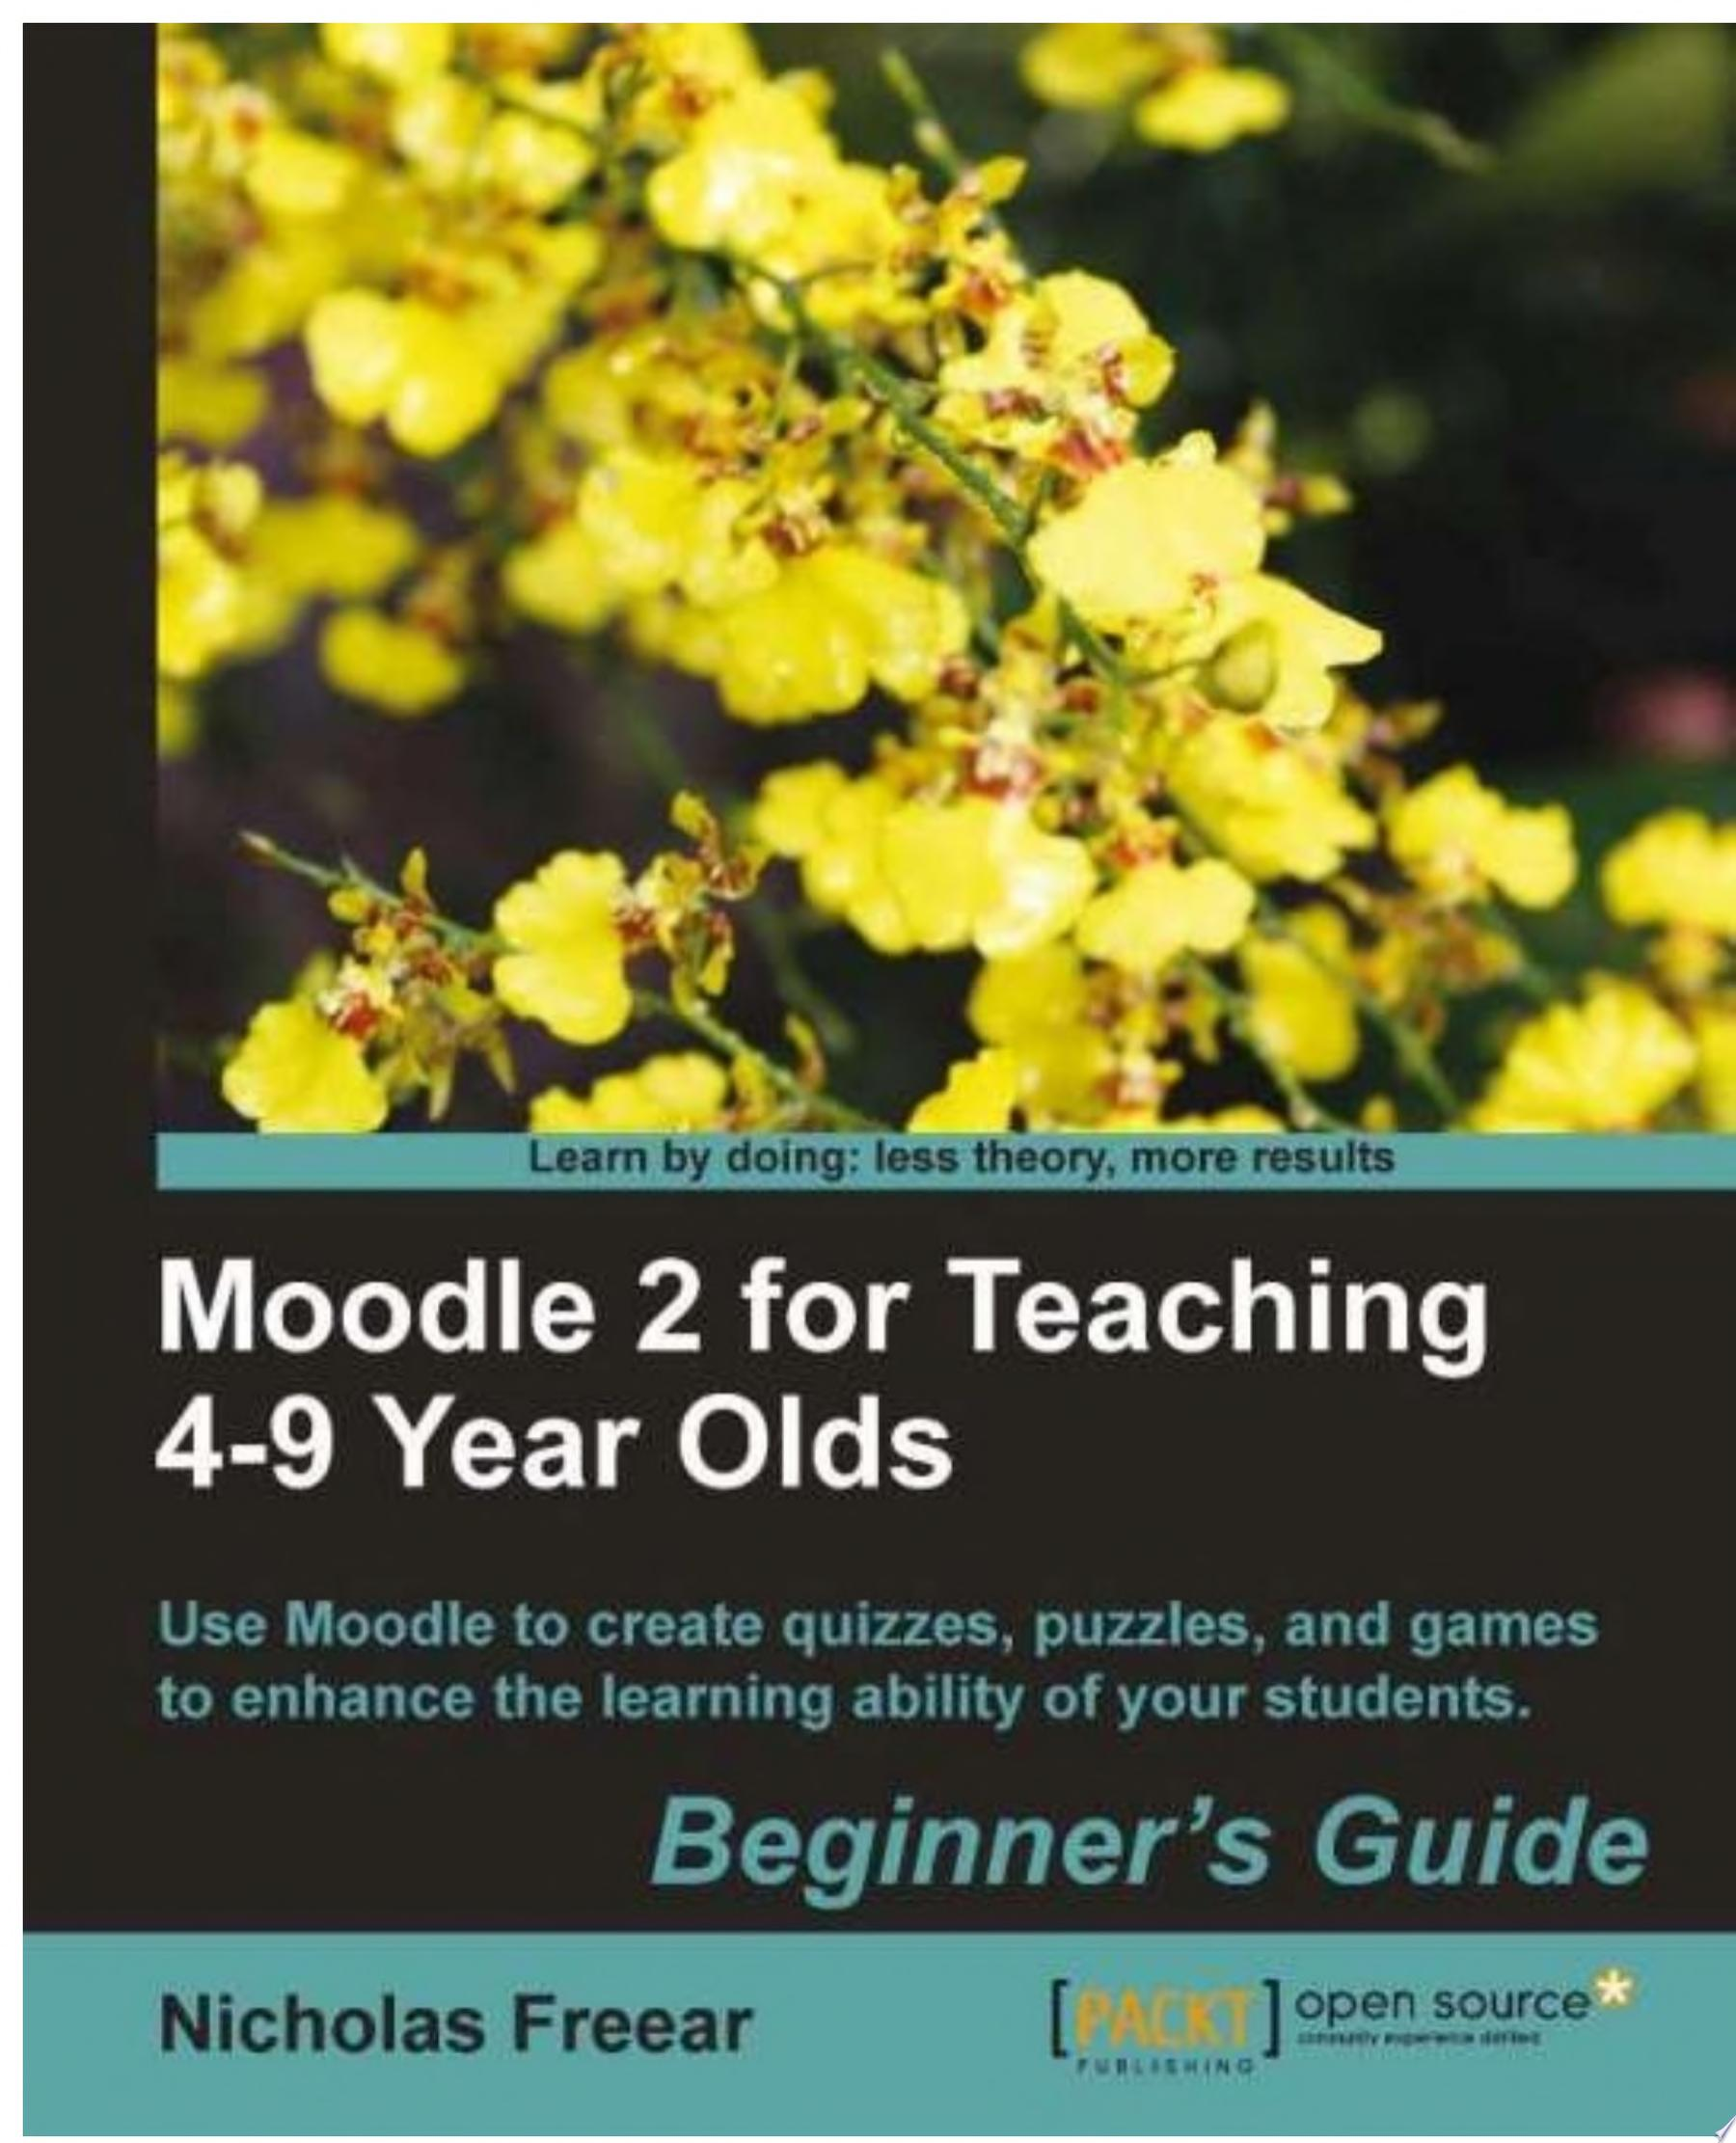 Moodle 2 for Teaching 4 9 Year Olds Beginner s Guide